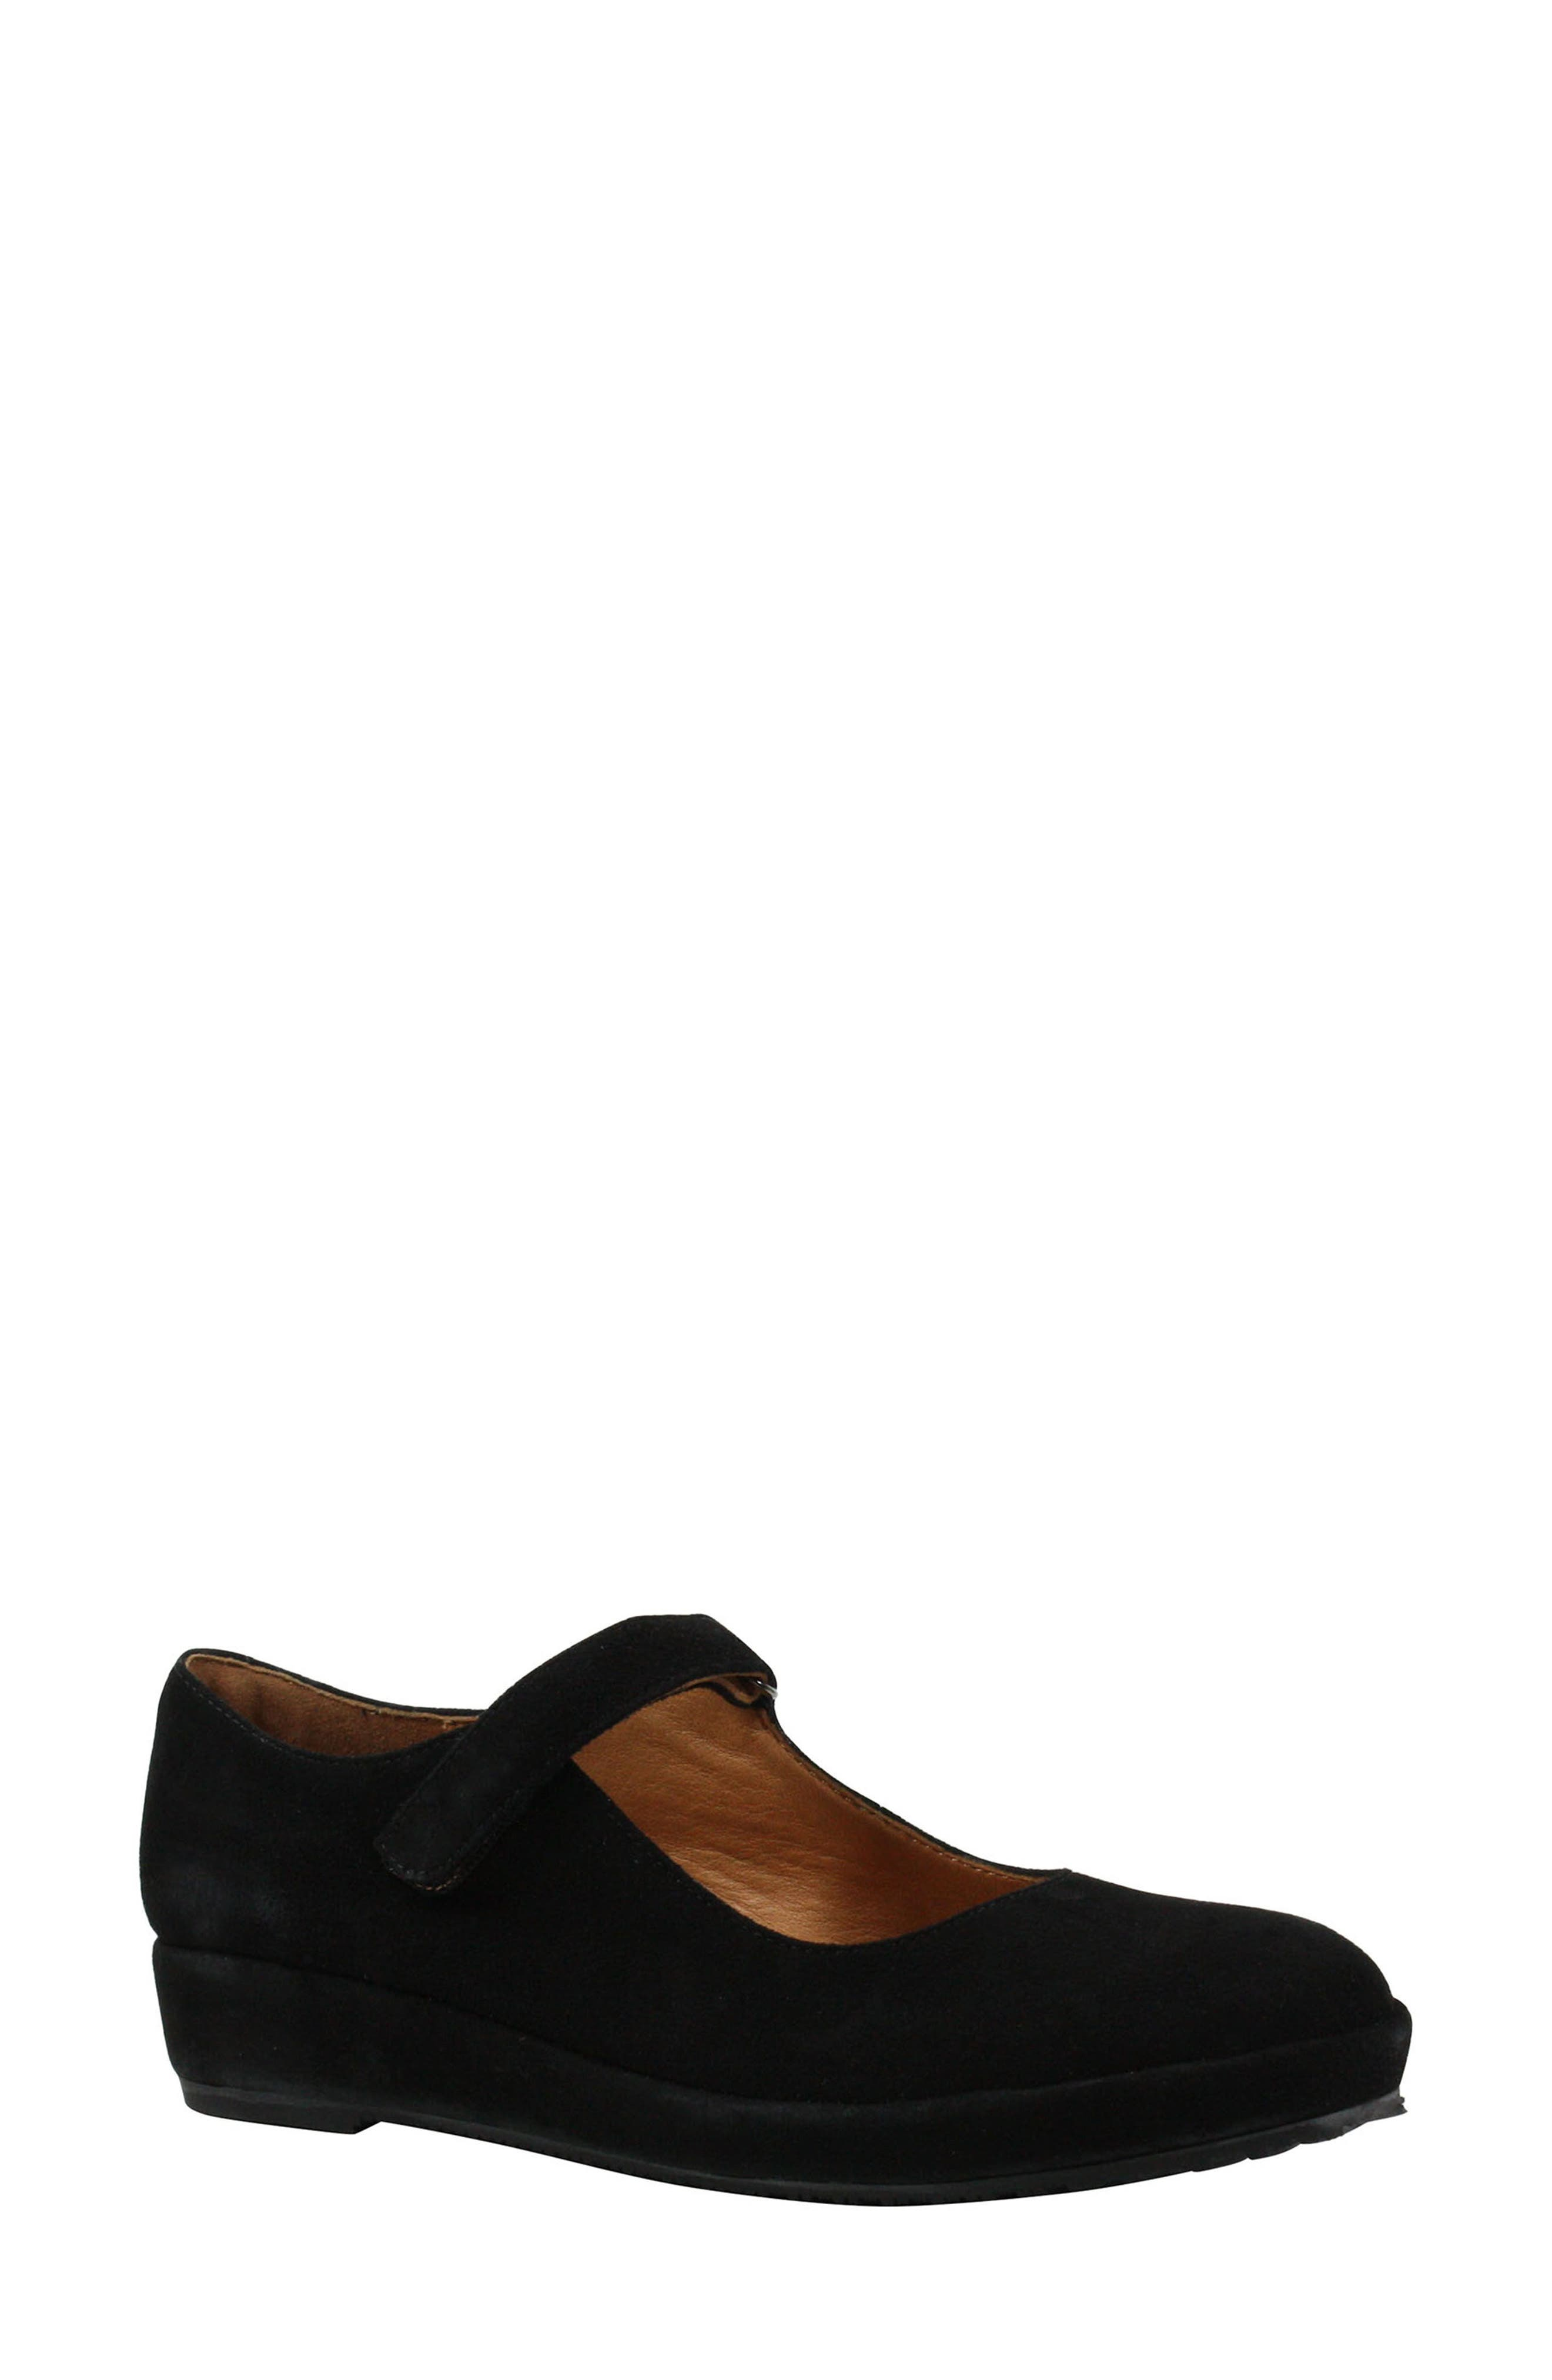 LAMOUR DES PIEDS Cornelie Mary Jane Wedge